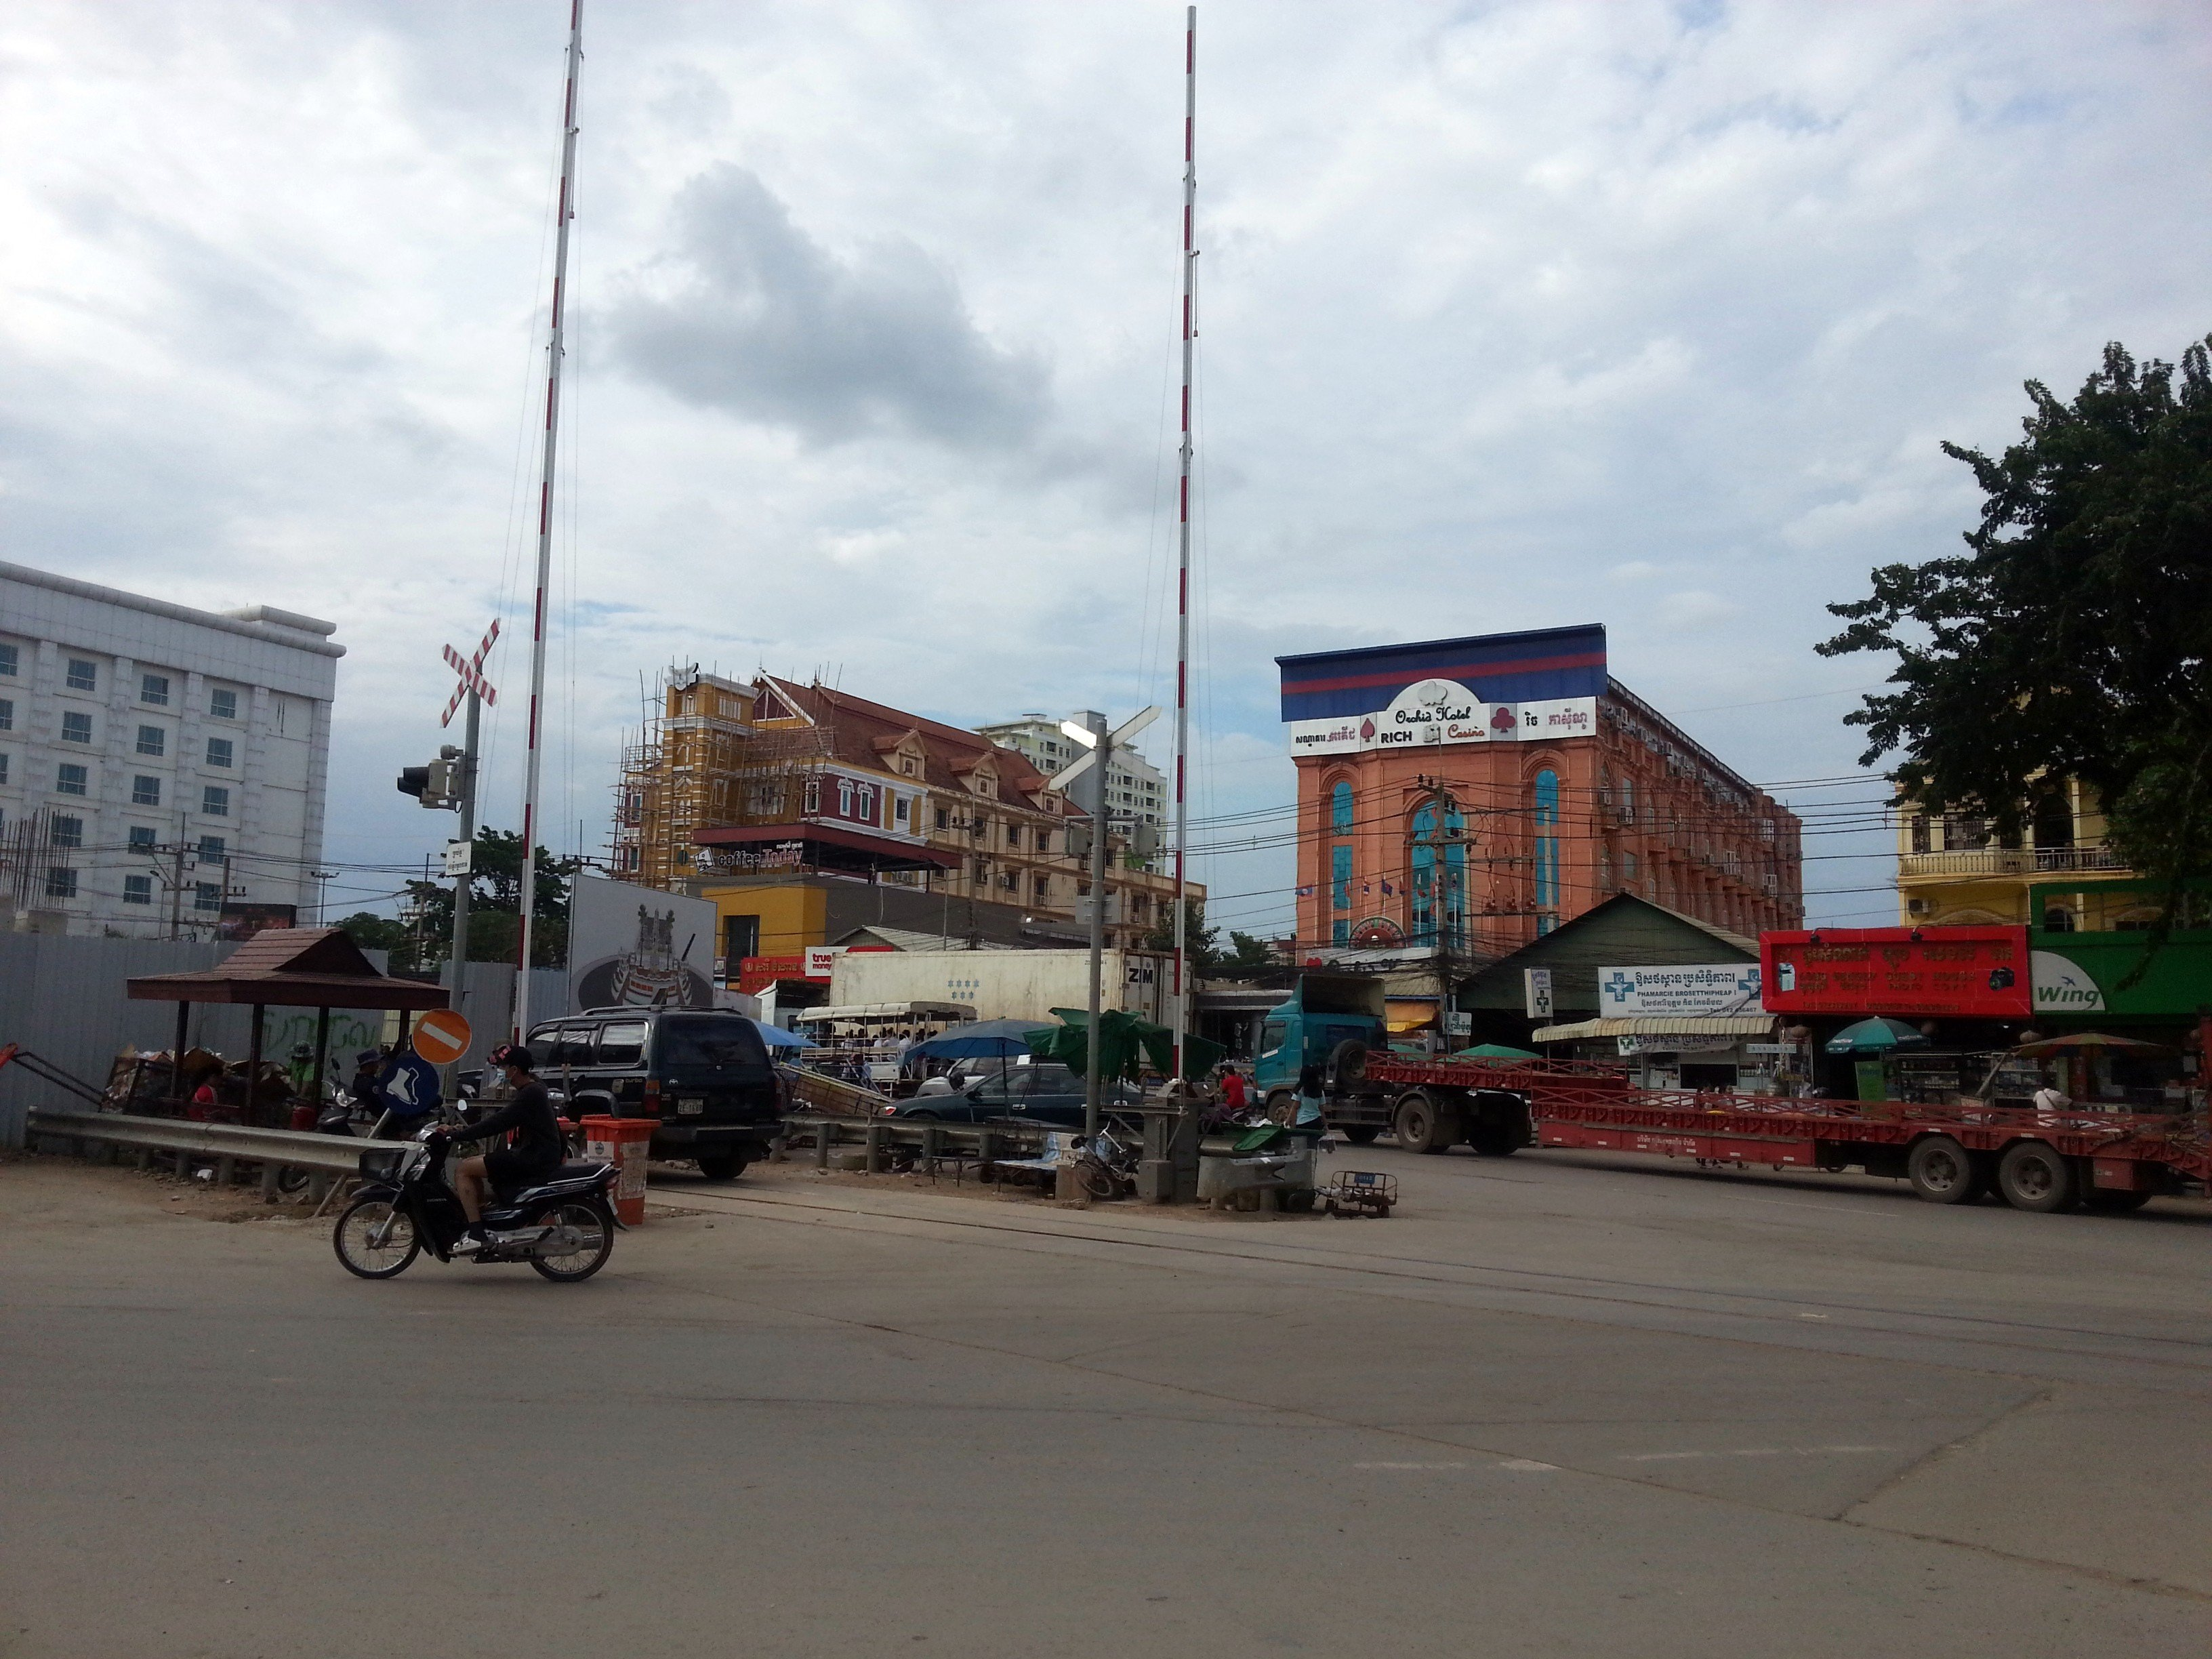 The Cambodia side of the border